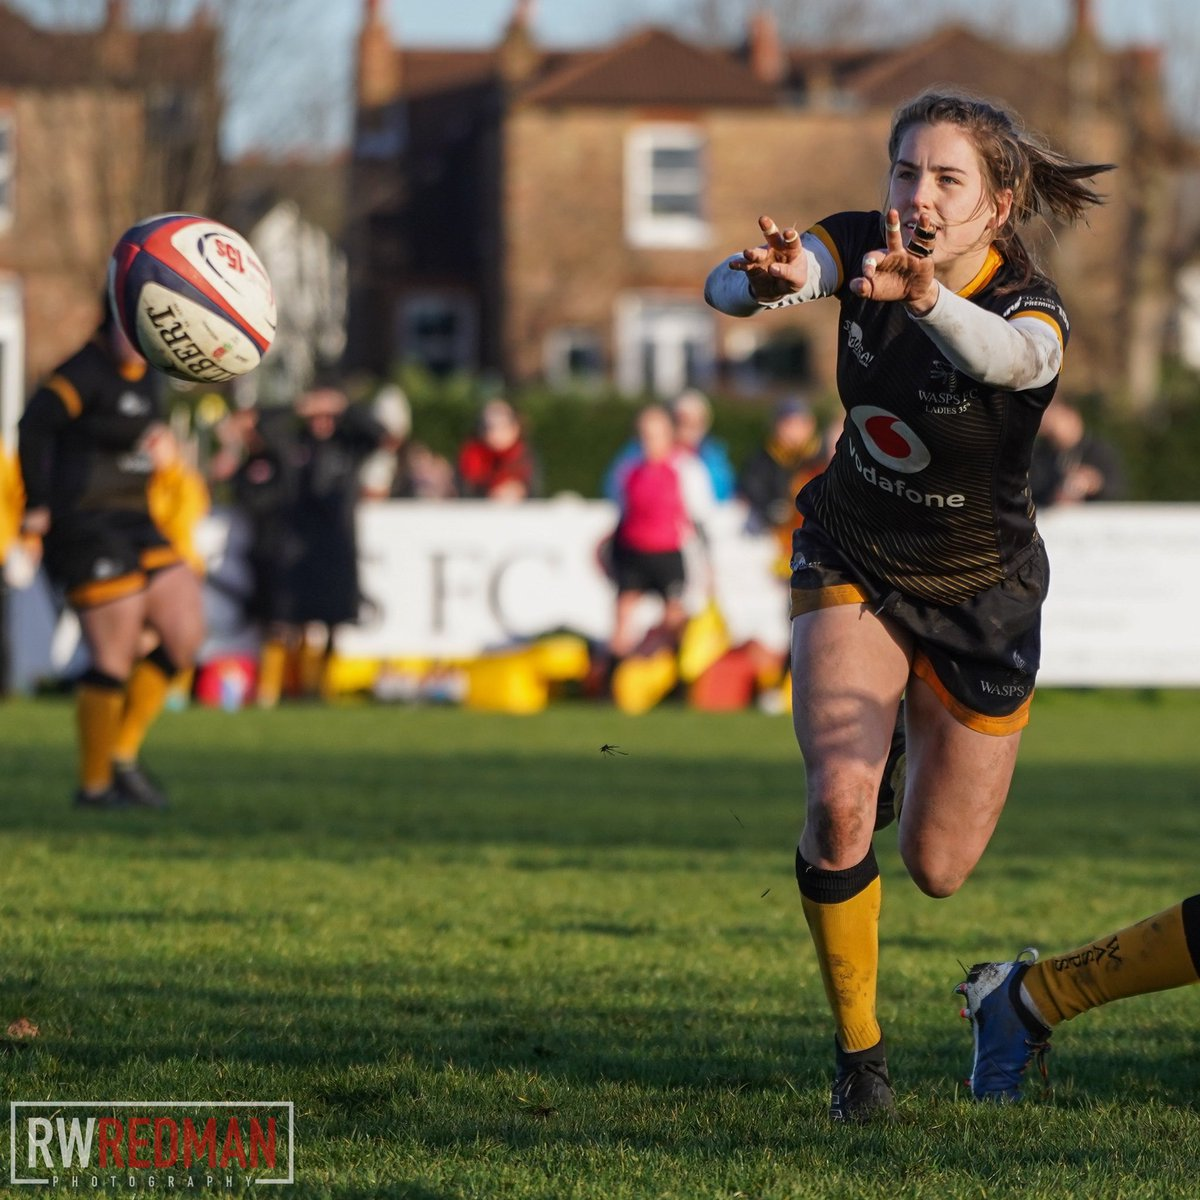 Match action from a fantastic game between @Waspsladies & @BristolBearsW in the @Premier15s